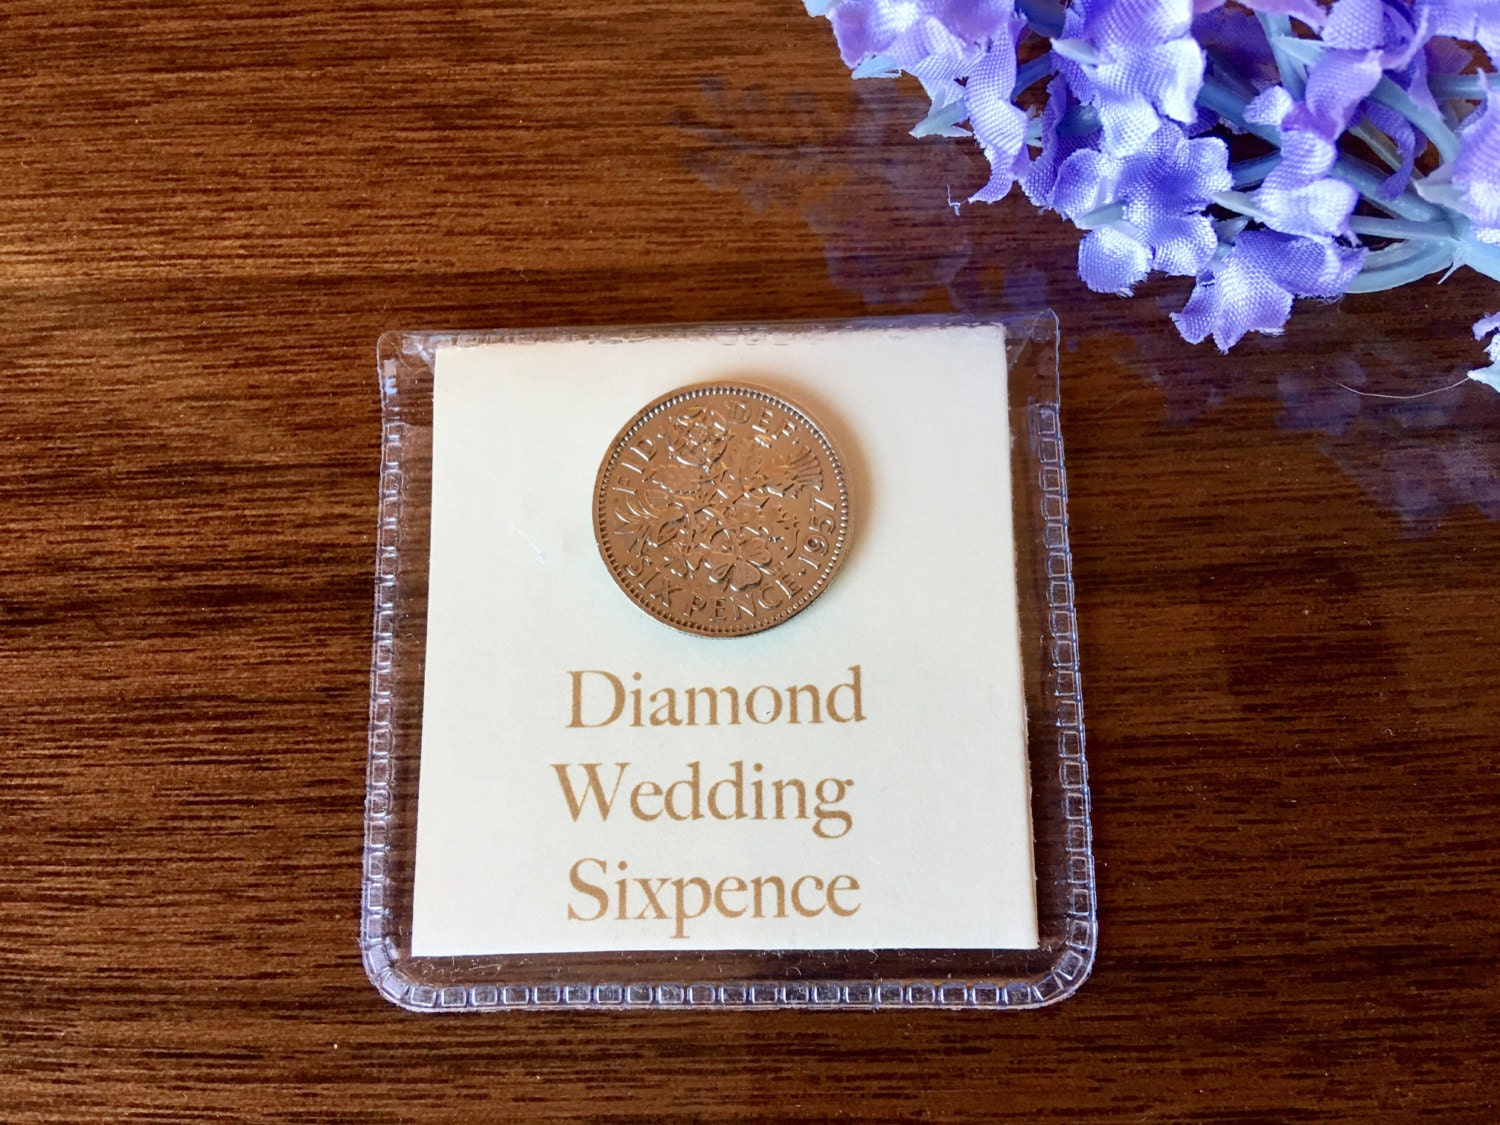 Diamond Wedding Sixpence 60th Anniversary Gift For Parents 60 Years Year Gifts Ideas